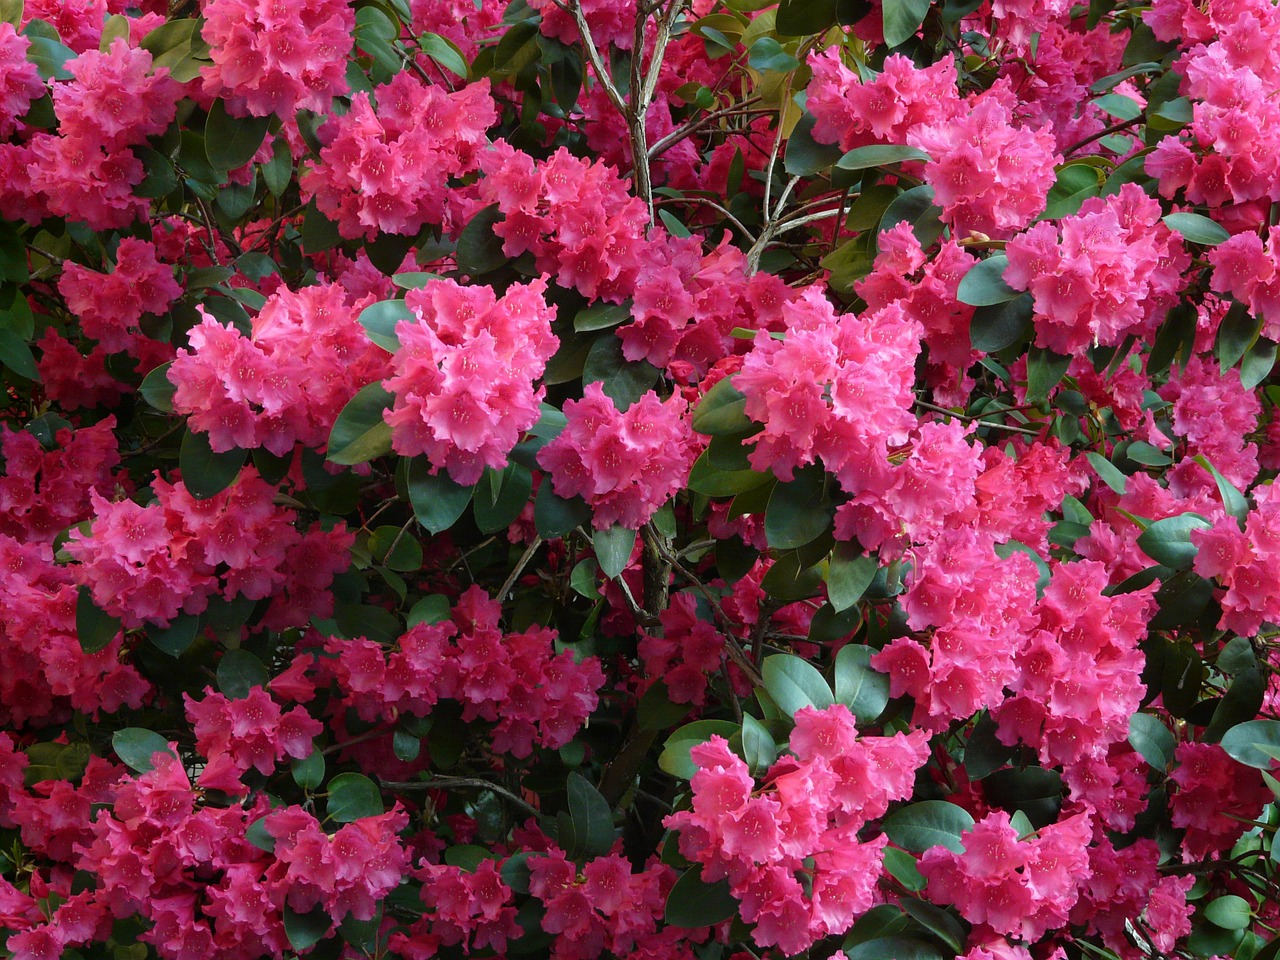 azalea,rhododendron,flowers,bloom,colorful,bright,plant,spring,free pictures, free photos, free images, royalty free, free illustrations, public domain